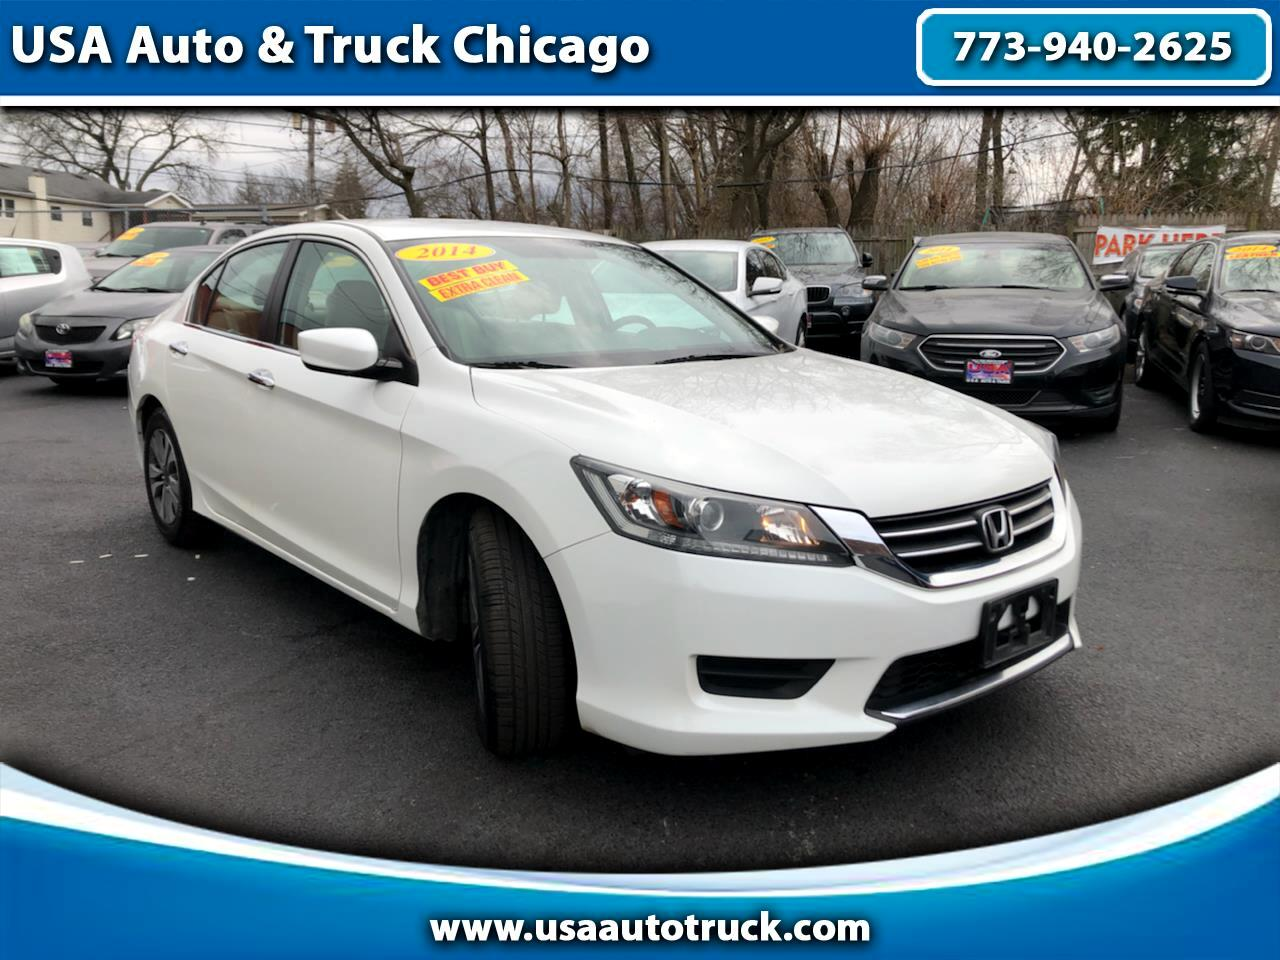 Honda Accord Sedan 4dr I4 CVT LX 2014